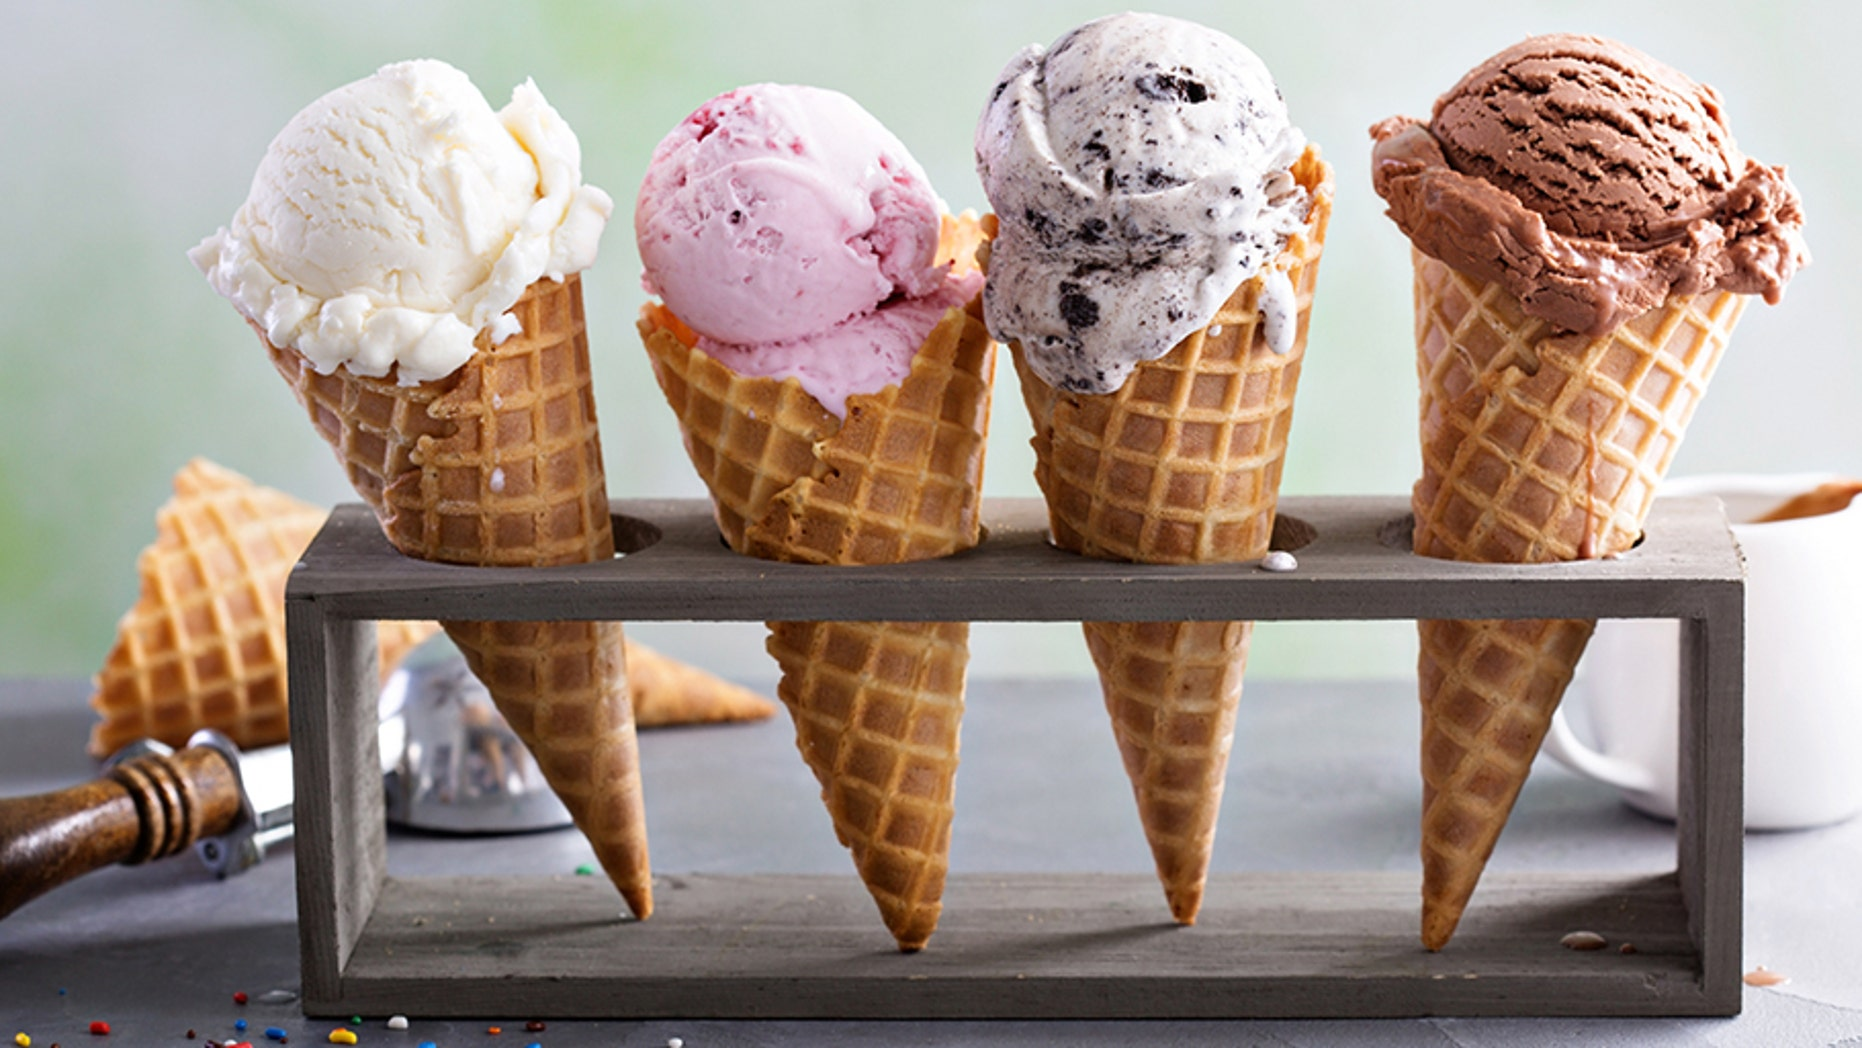 Westlake Legal Group Ice-Cream Missouri woman allegedly smashes restaurant windows with bat because it didn't have chocolate ice cream: report fox-news/us/us-regions/midwest/missouri fox news fnc/us fnc Brie Stimson article 7efed70a-8c47-5329-8ffb-eda464703d6e